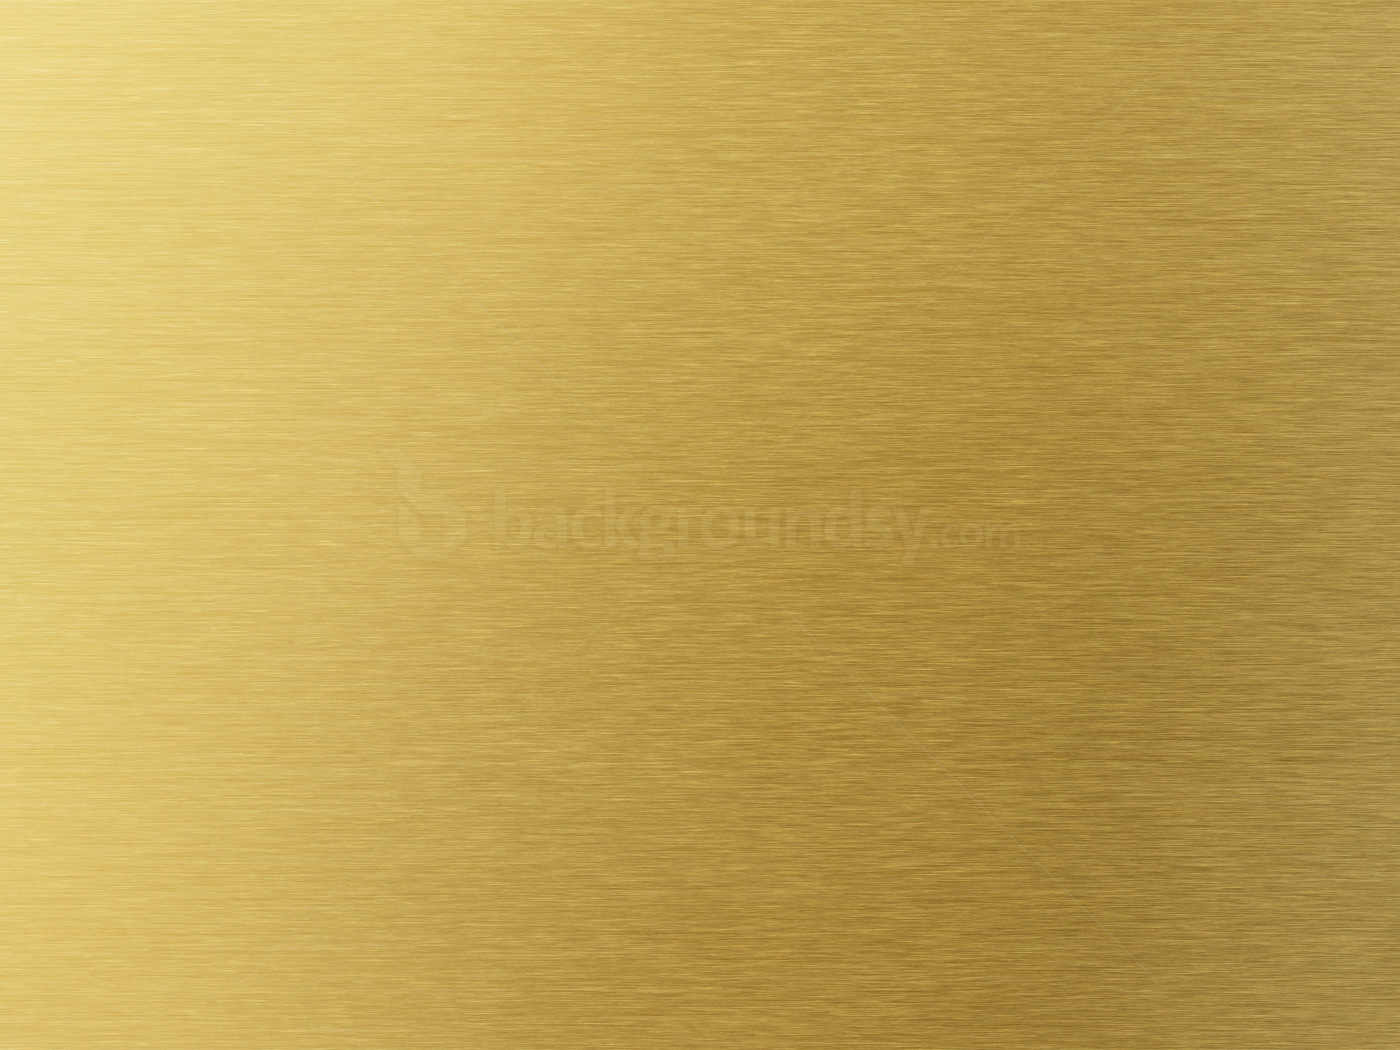 gold metal texture background - photo #14